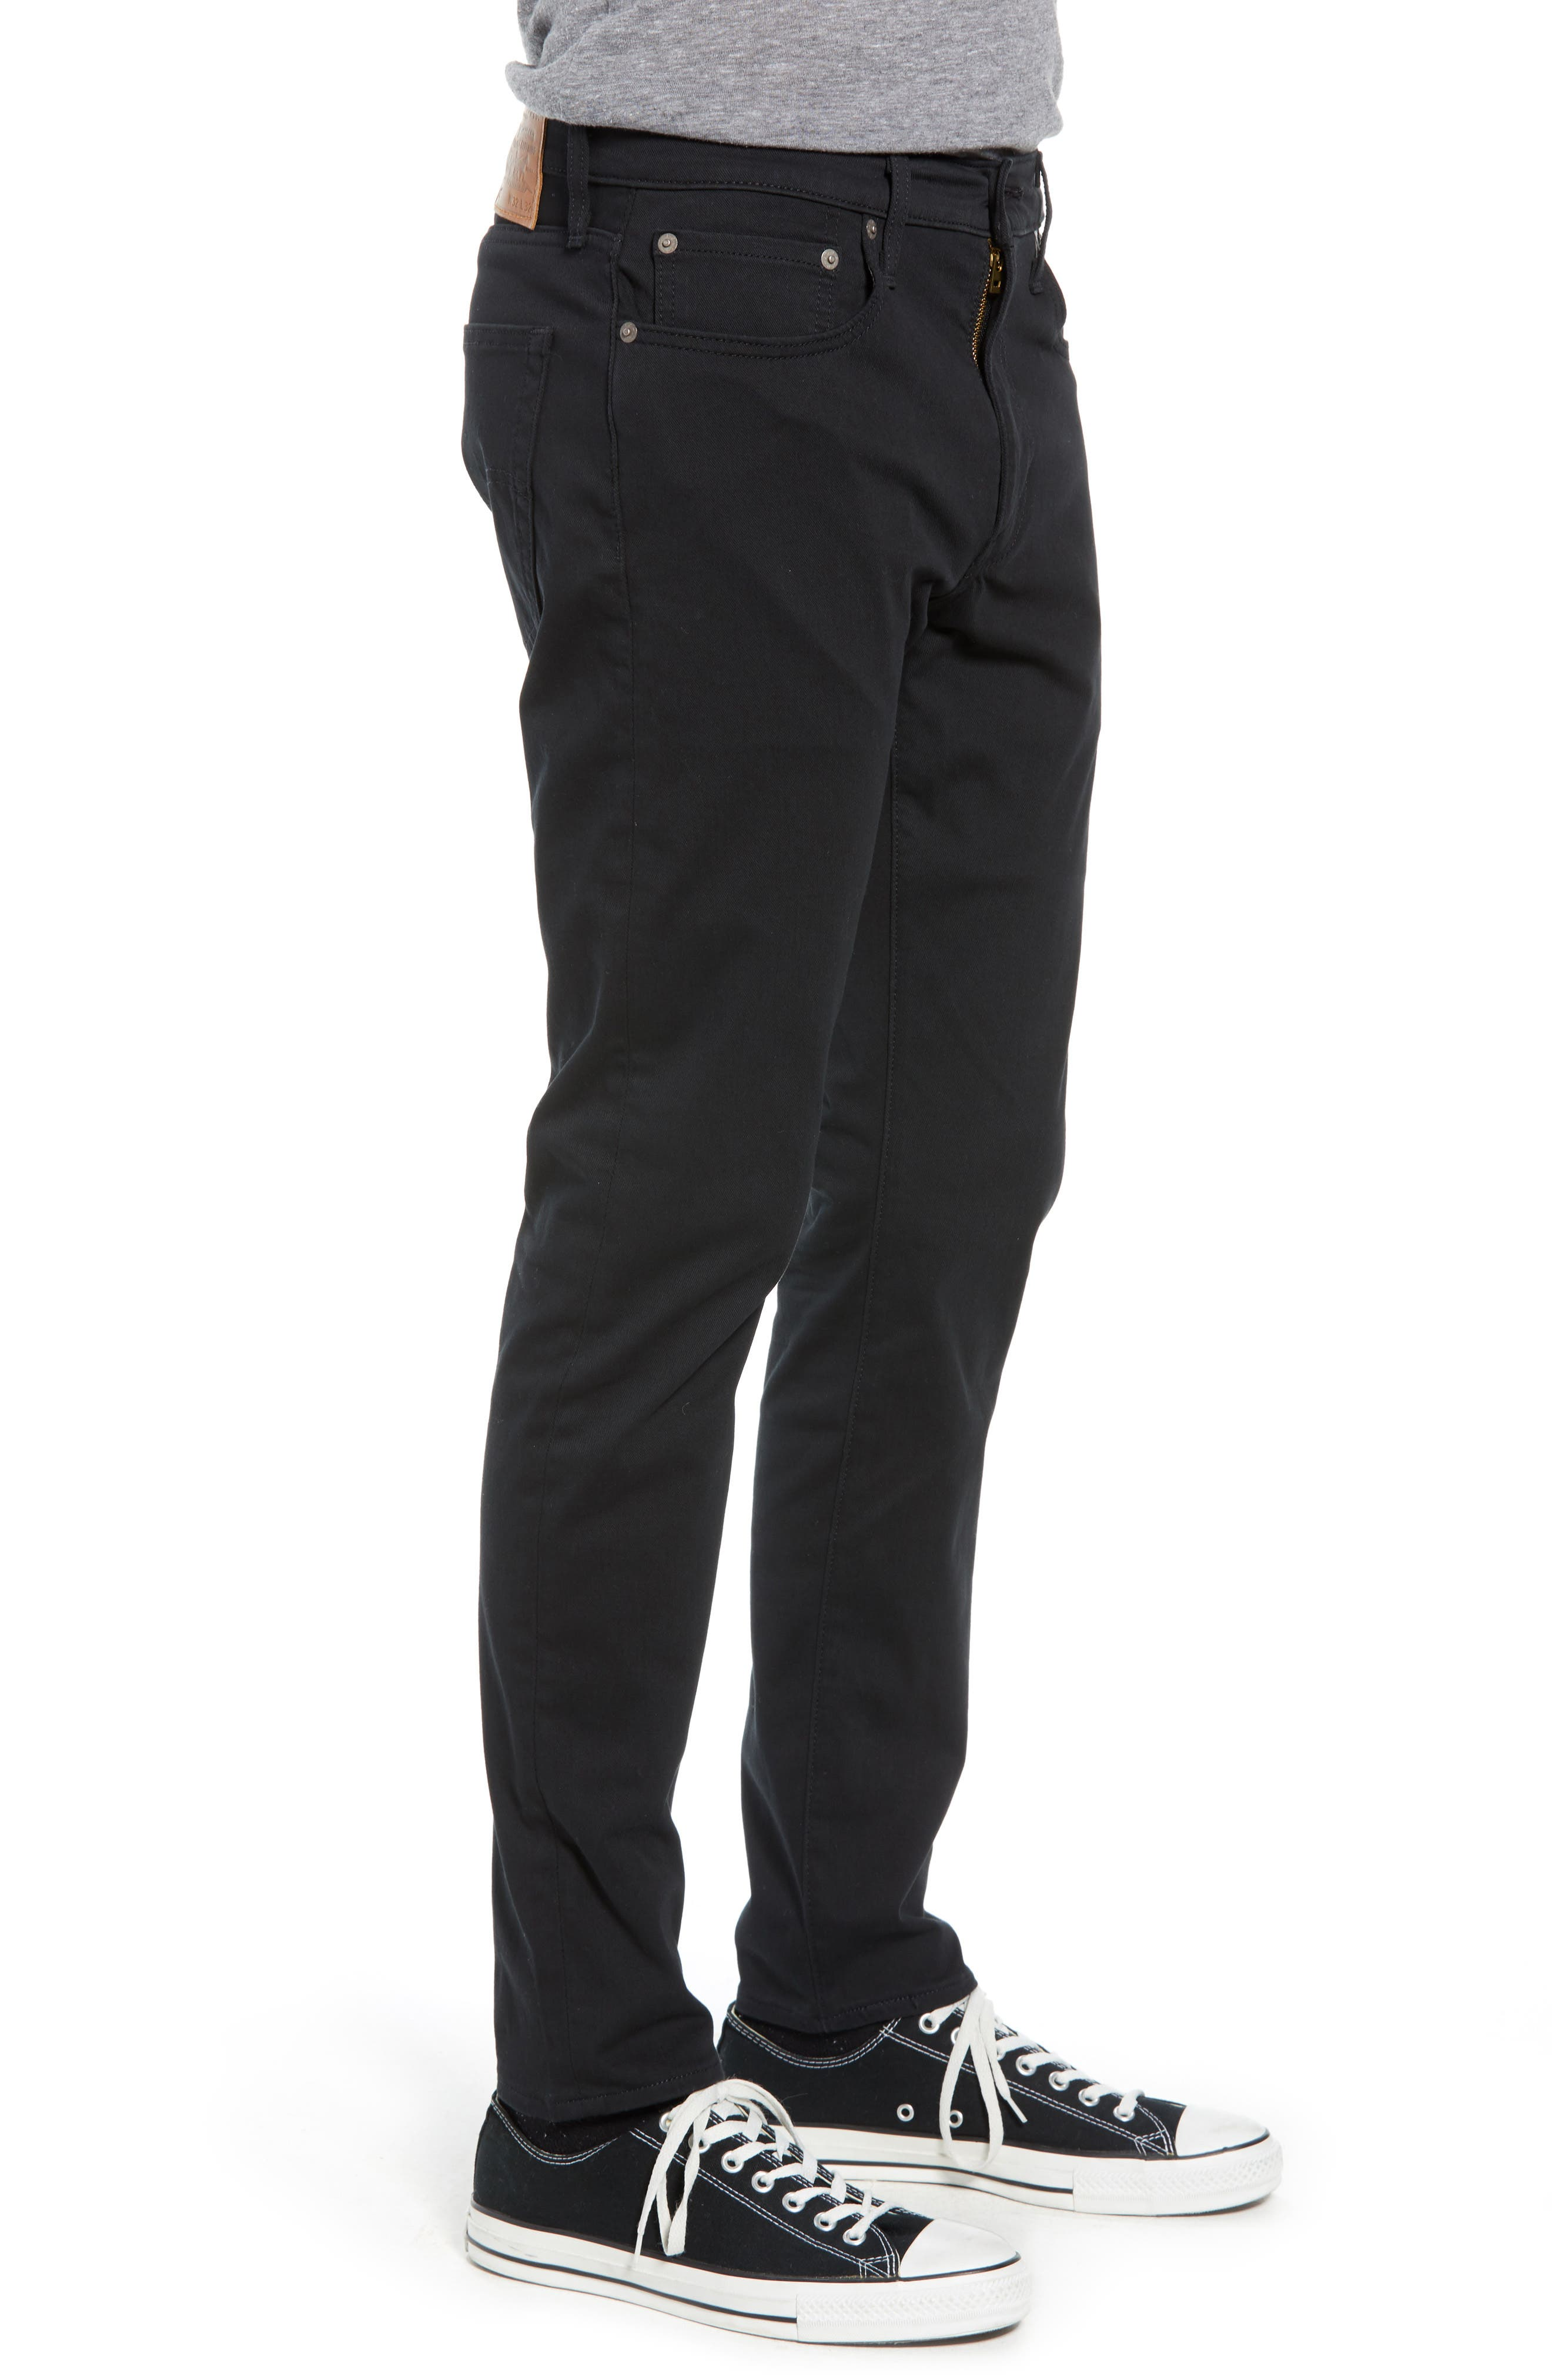 512<sup>™</sup> Slouchy Skinny Fit Twill Pants,                             Alternate thumbnail 3, color,                             BLACK WONDER KNIT TWILL